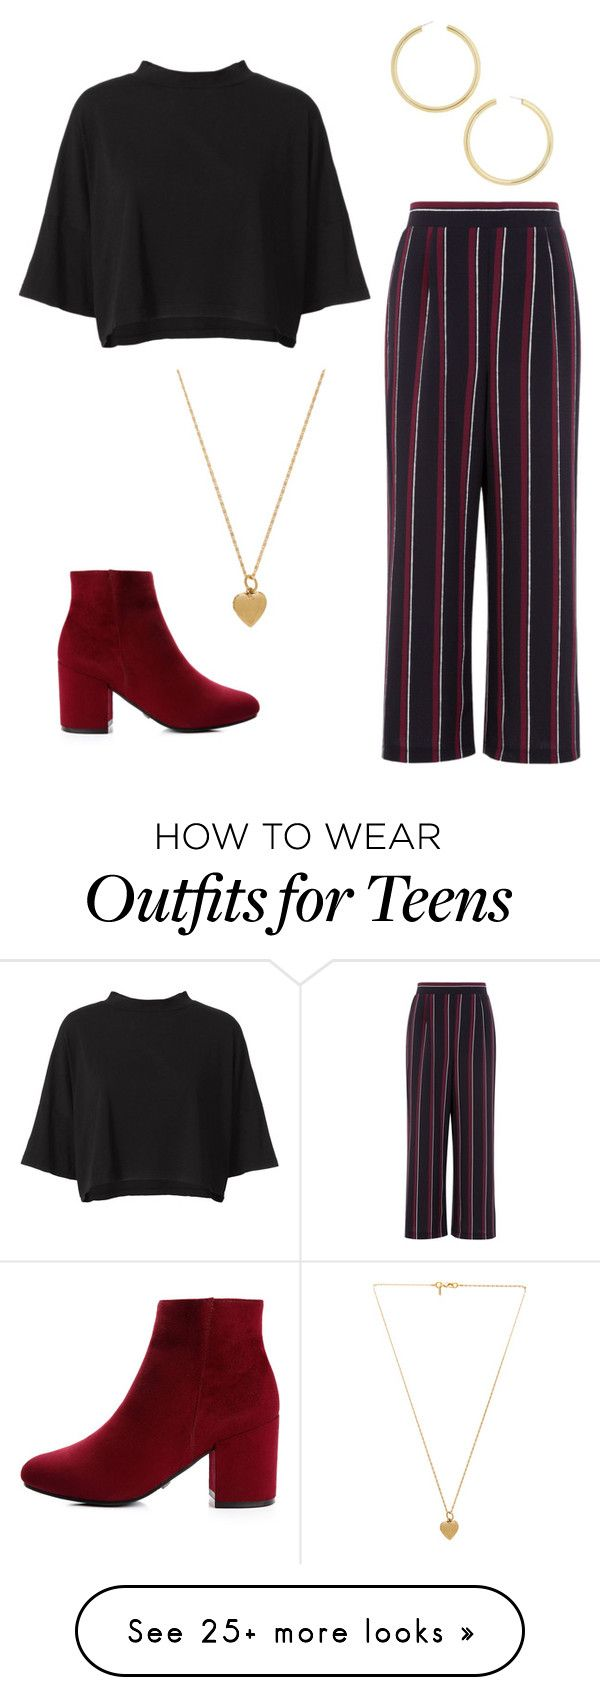 """""""Dallas"""" by imveryconfused on Polyvore featuring RE/DONE, BaubleBar and Vanessa Mooney"""